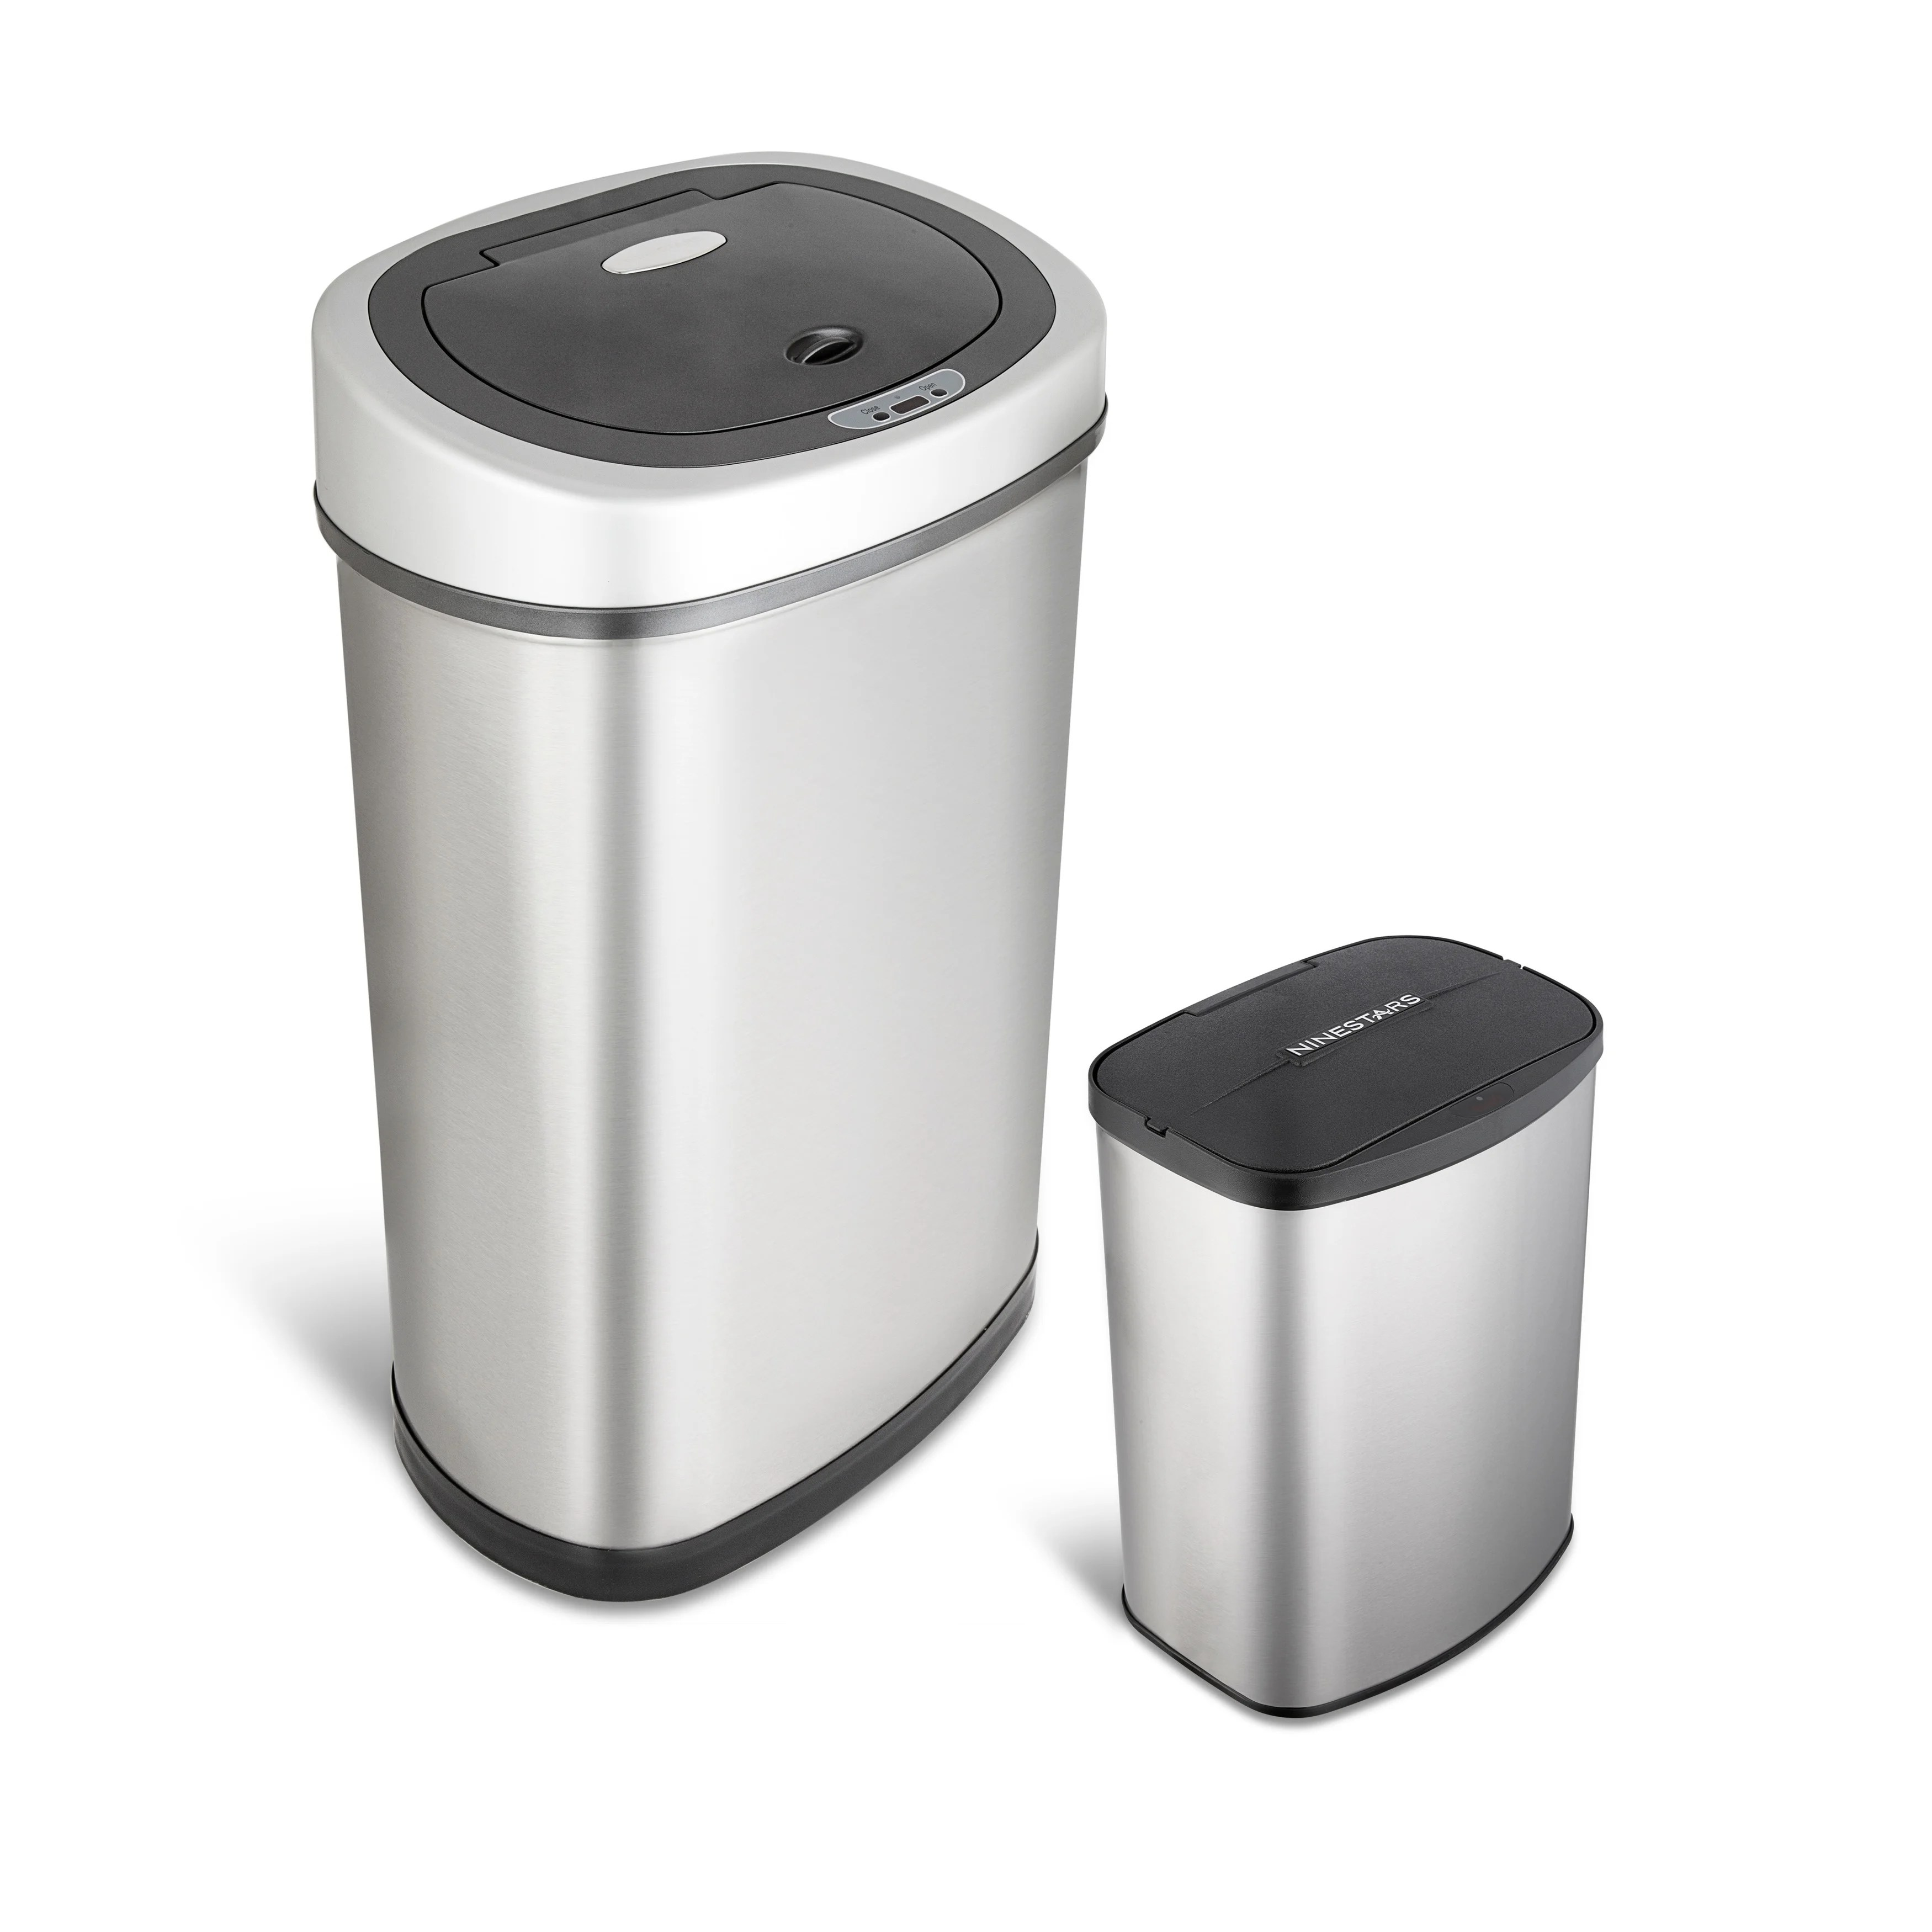 Small Kitchen Trash Cans Overstock Online Shopping Bedding Furniture Electronics Jewelry Clothing More